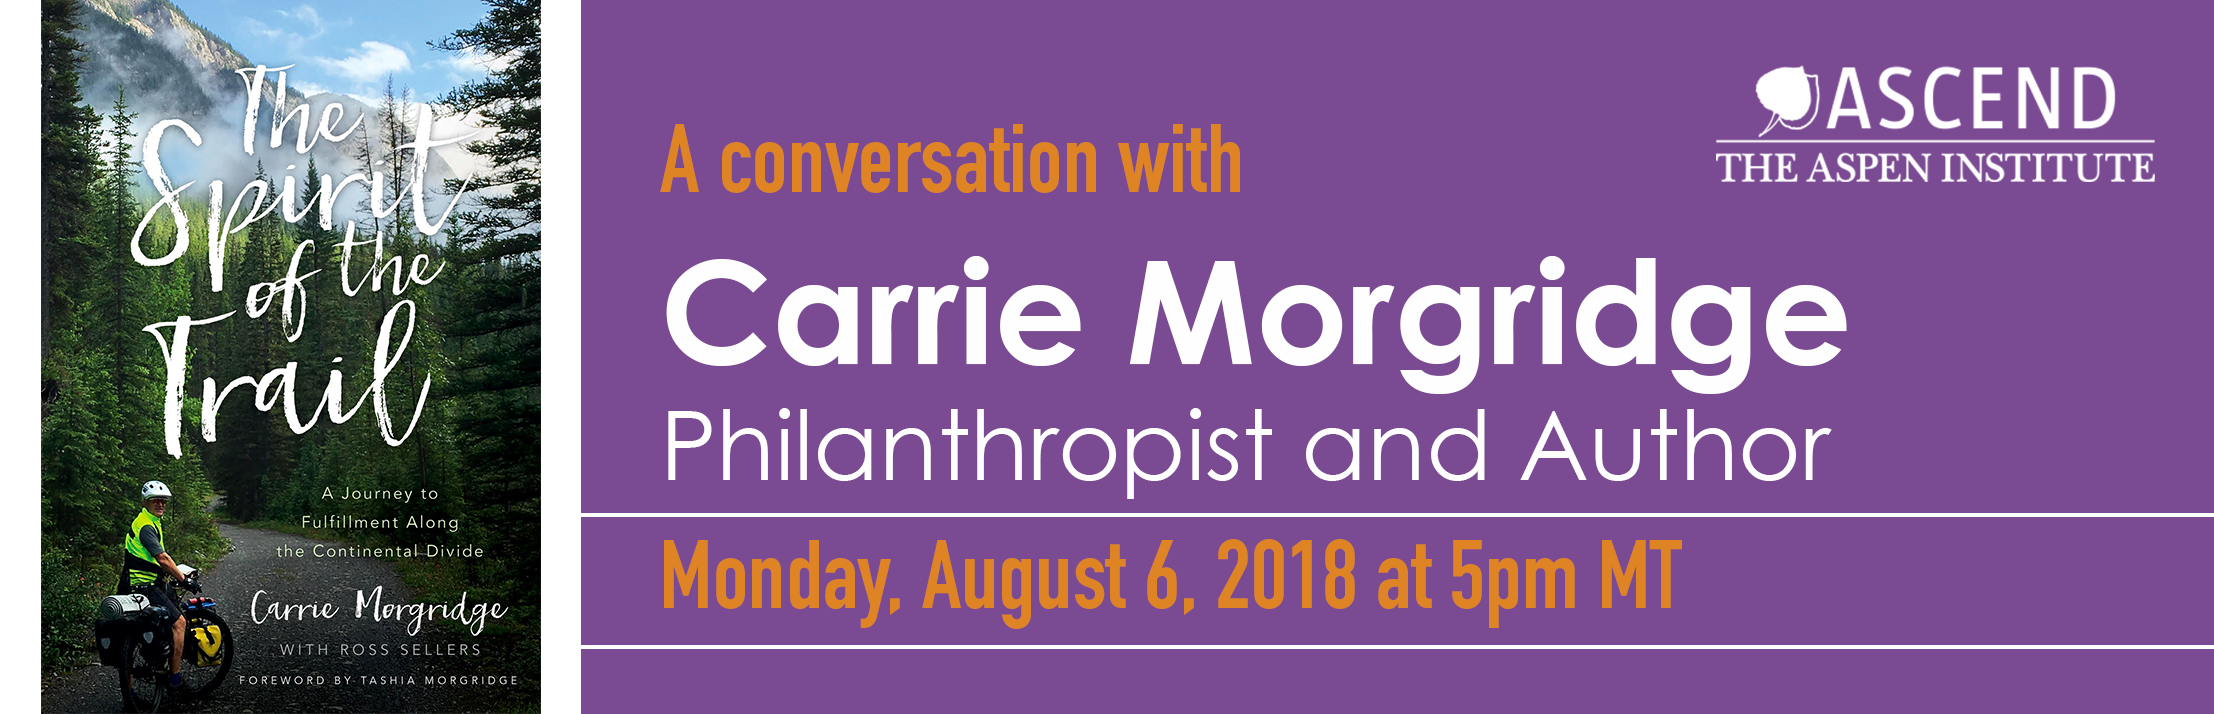 Carrie Morgridge book talk